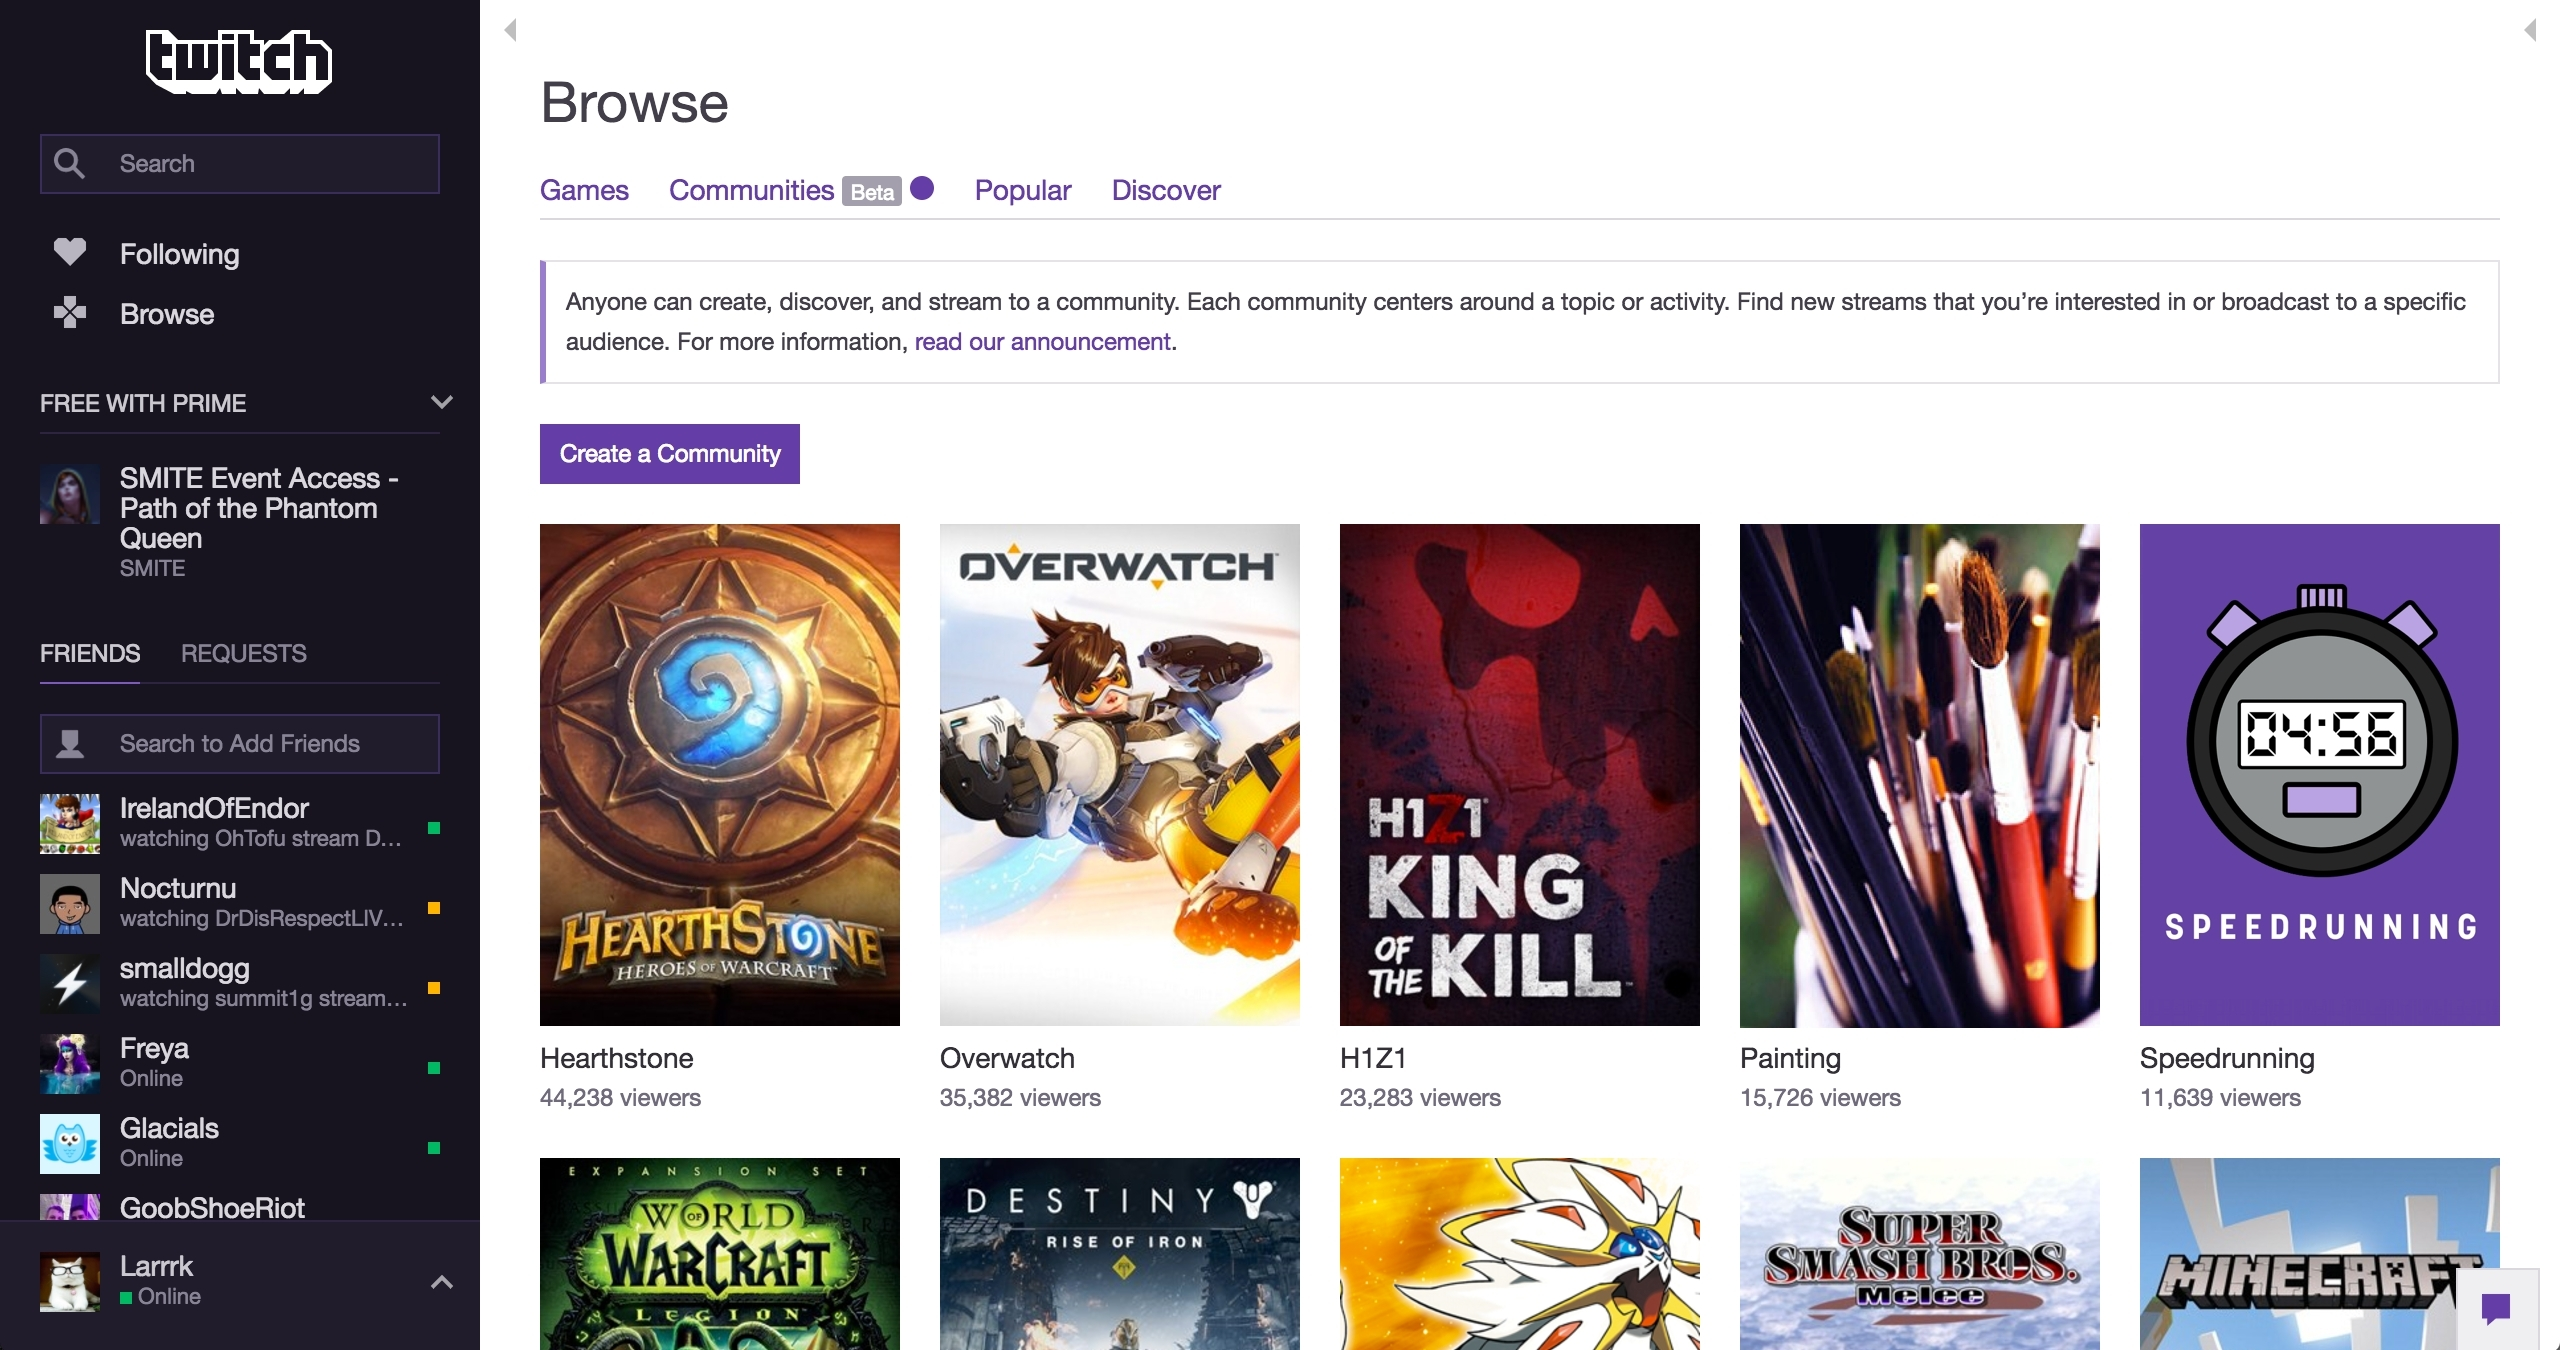 Twitch's new Communities directory allows creators and viewers to better discover and share great content based on their specific interests. (Graphic: Business Wire)